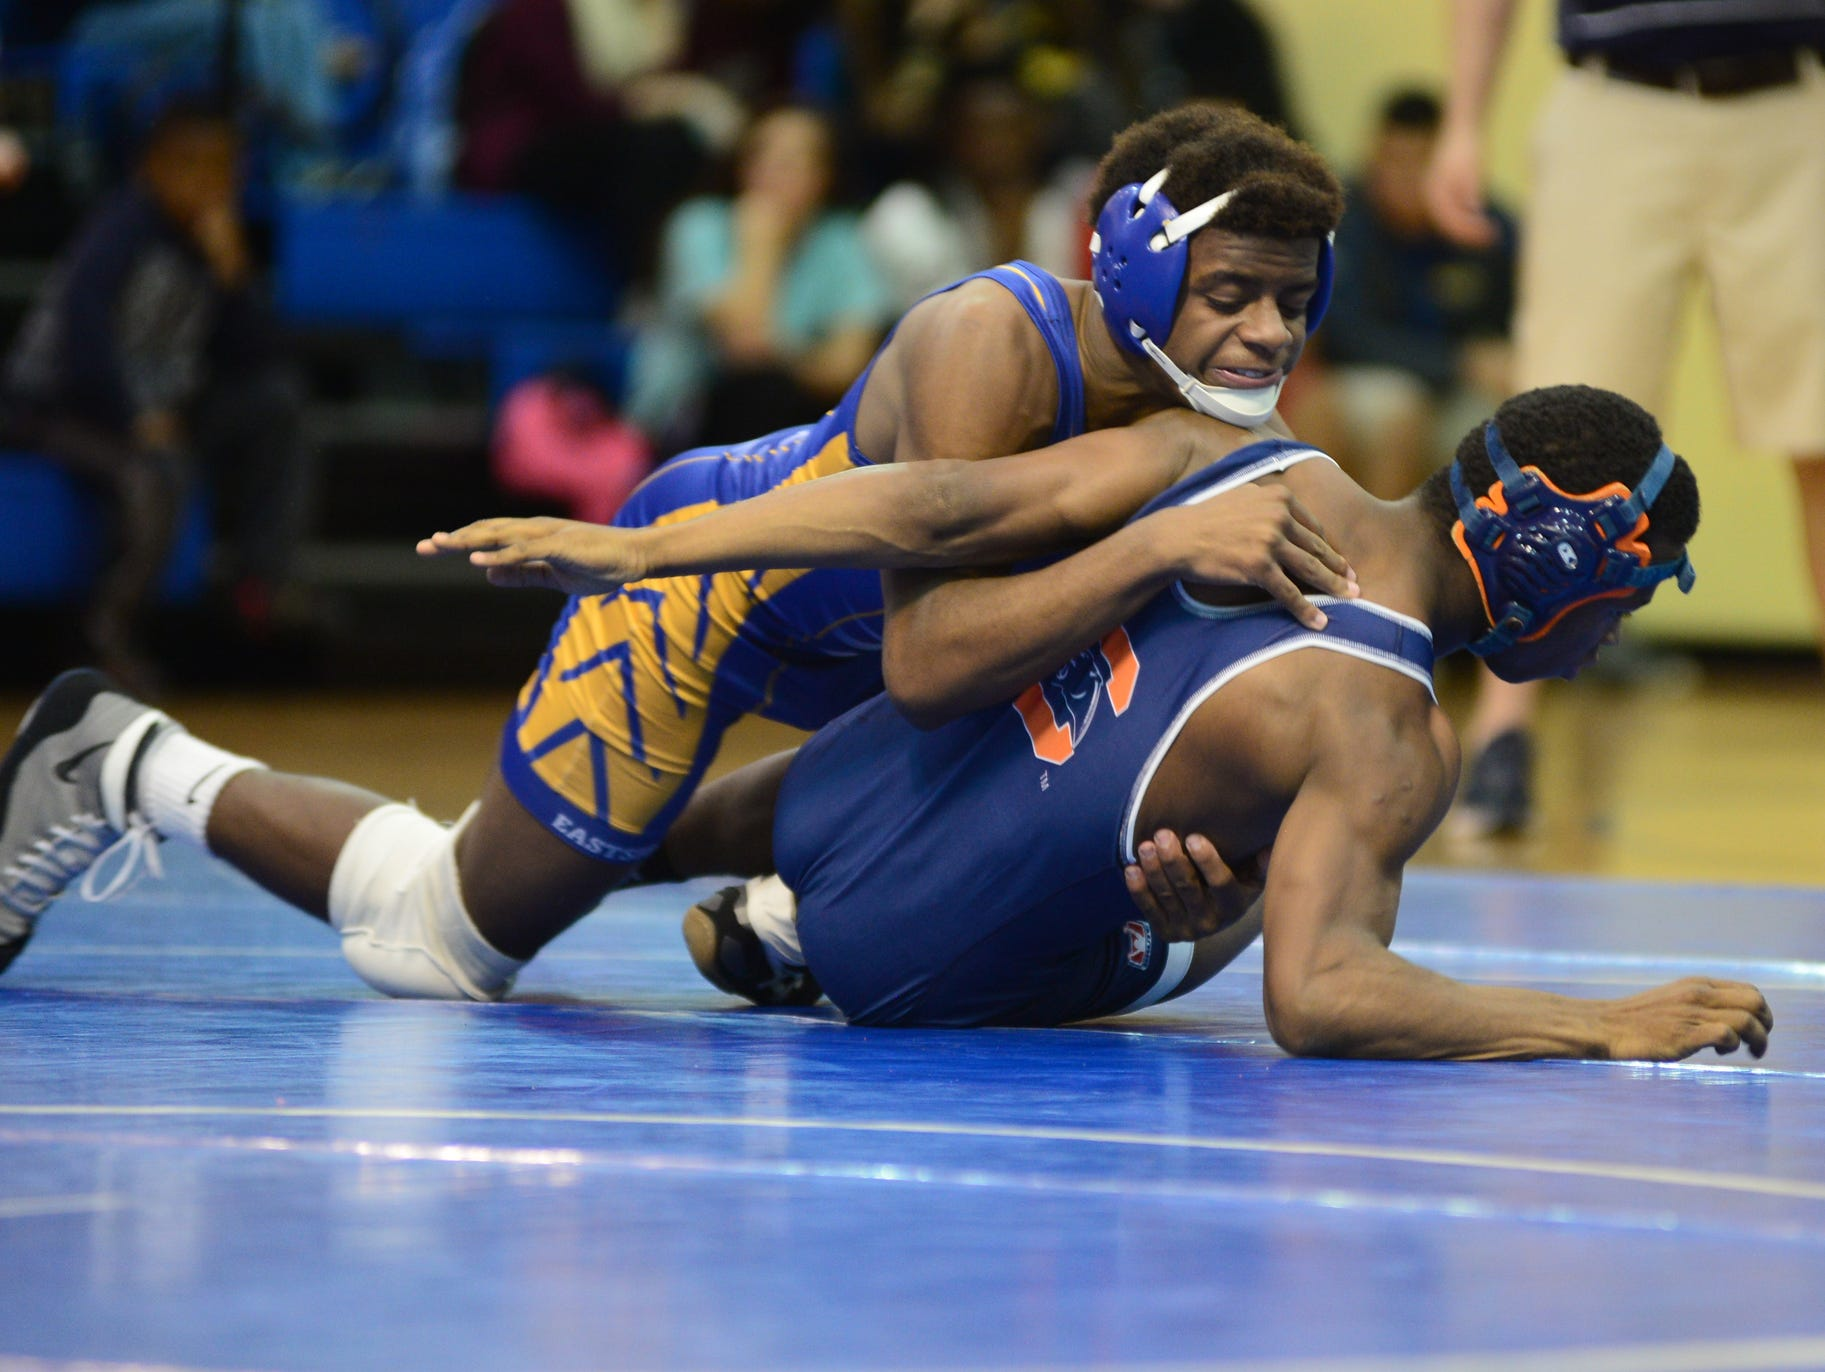 Eastside High's Chance Pride goes up against Qualin Mack-Nesbitt of Chapman during a wrestling match at Eastside Wednesday afternoon.